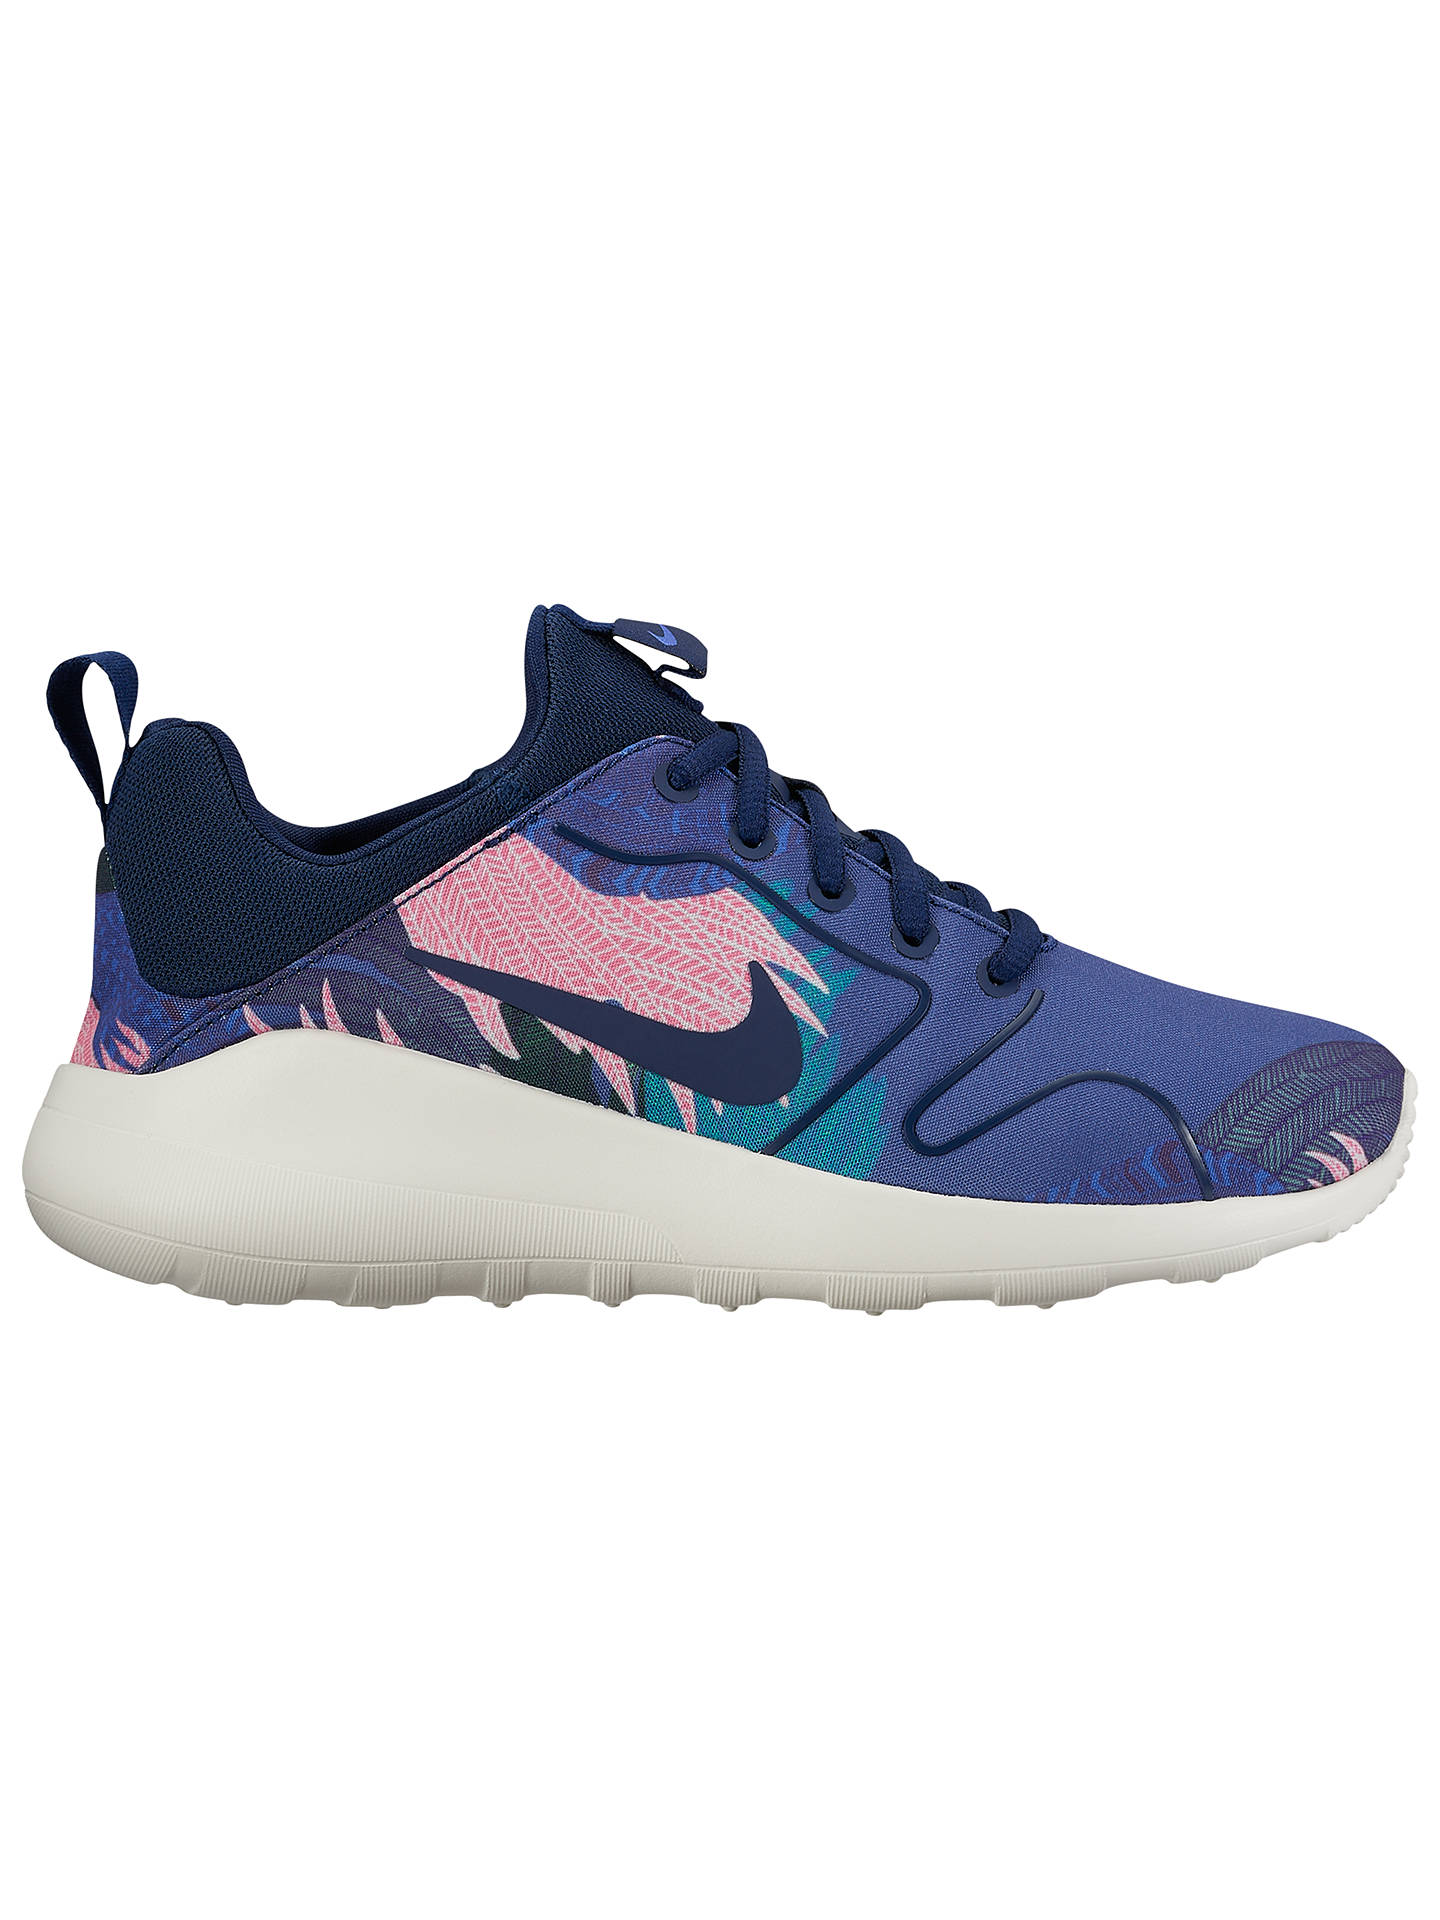 newest f36a0 41381 italy nike kaishi 2.0 print shoe fc0c8 cf38f  czech buynike kaishi 2.0 leaf print  womens trainers binary blue 4 online at johnlewis. dfda2